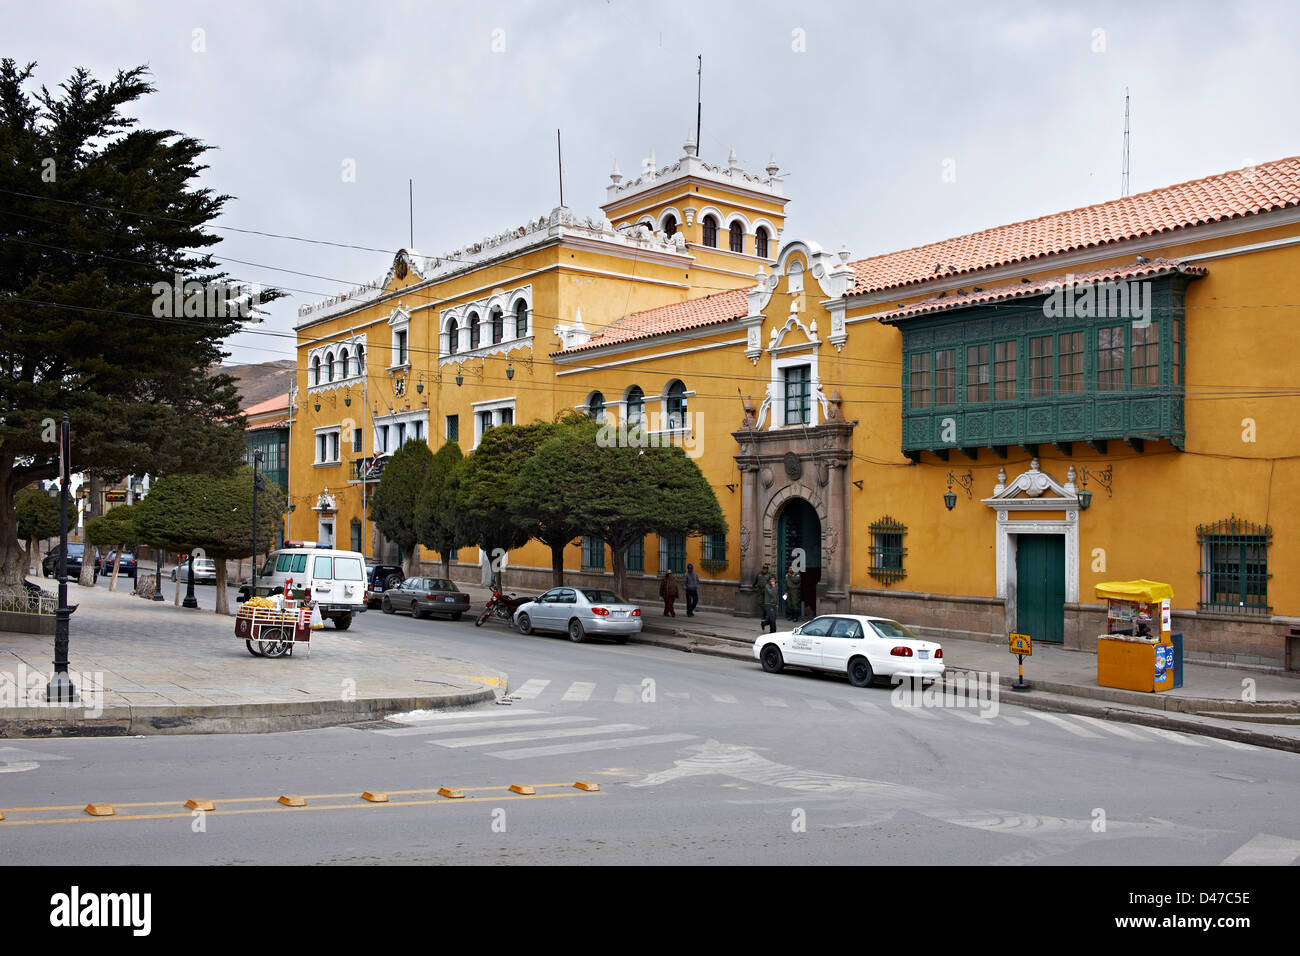 town hall, colourful colonial architecture in the streets of Potosi, Bolivia, South America - Stock Image